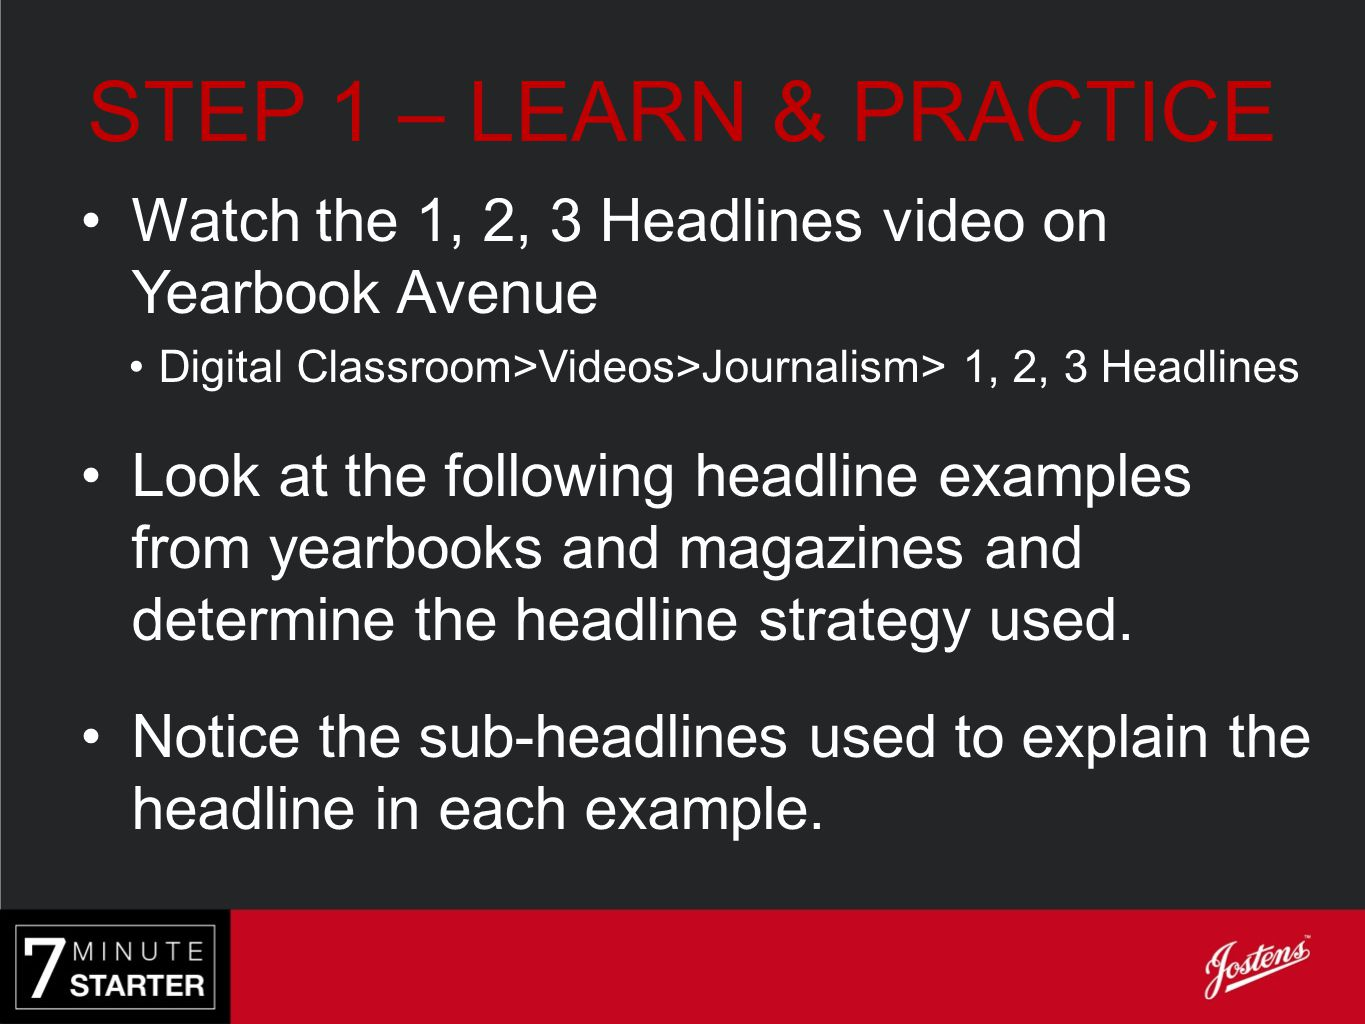 STEP 1 – LEARN & PRACTICE Watch the 1, 2, 3 Headlines video on Yearbook Avenue. Digital Classroom>Videos>Journalism> 1, 2, 3 Headlines.